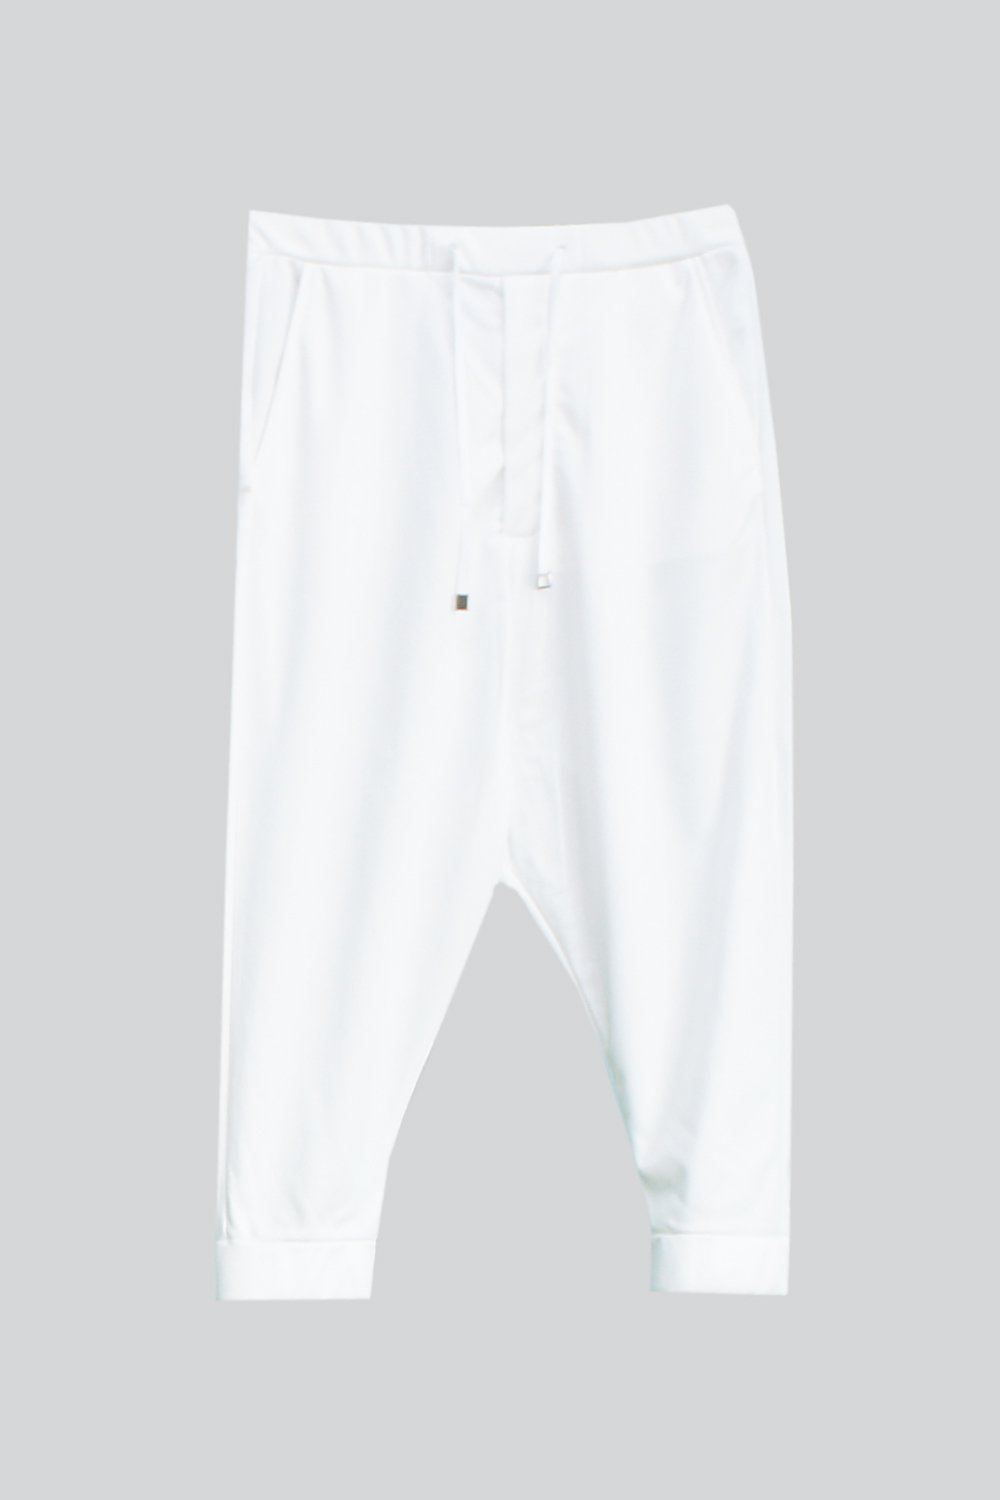 <img class='new_mark_img1' src='https://img.shop-pro.jp/img/new/icons8.gif' style='border:none;display:inline;margin:0px;padding:0px;width:auto;' />SWEAT  SARROUEL PANTS WHITE